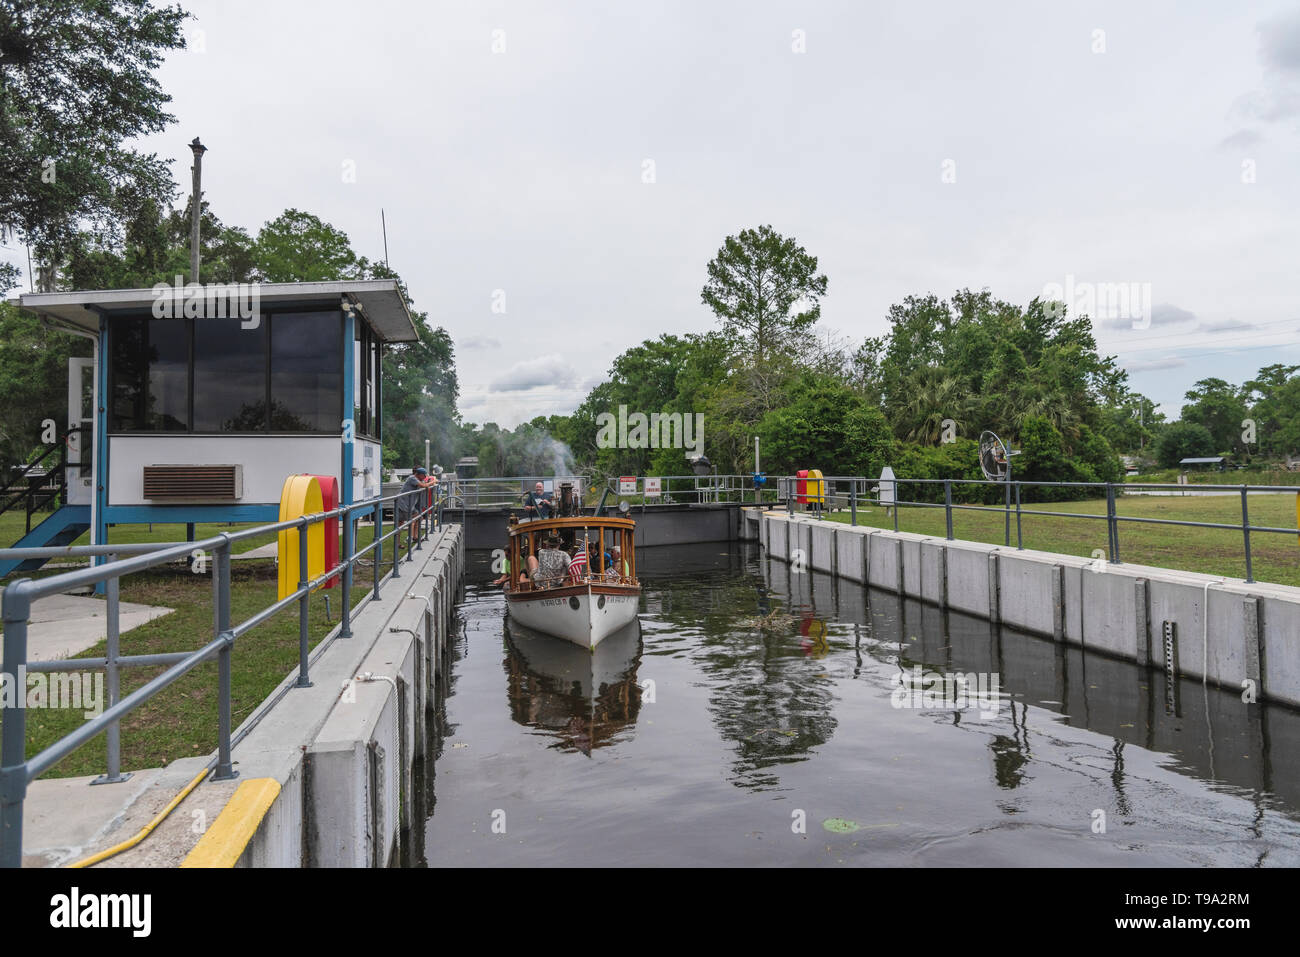 Steamboat leaving the Burrell Navigational lock and Dam located on the Haines Creek in Leesburg, Florida USA - Stock Image